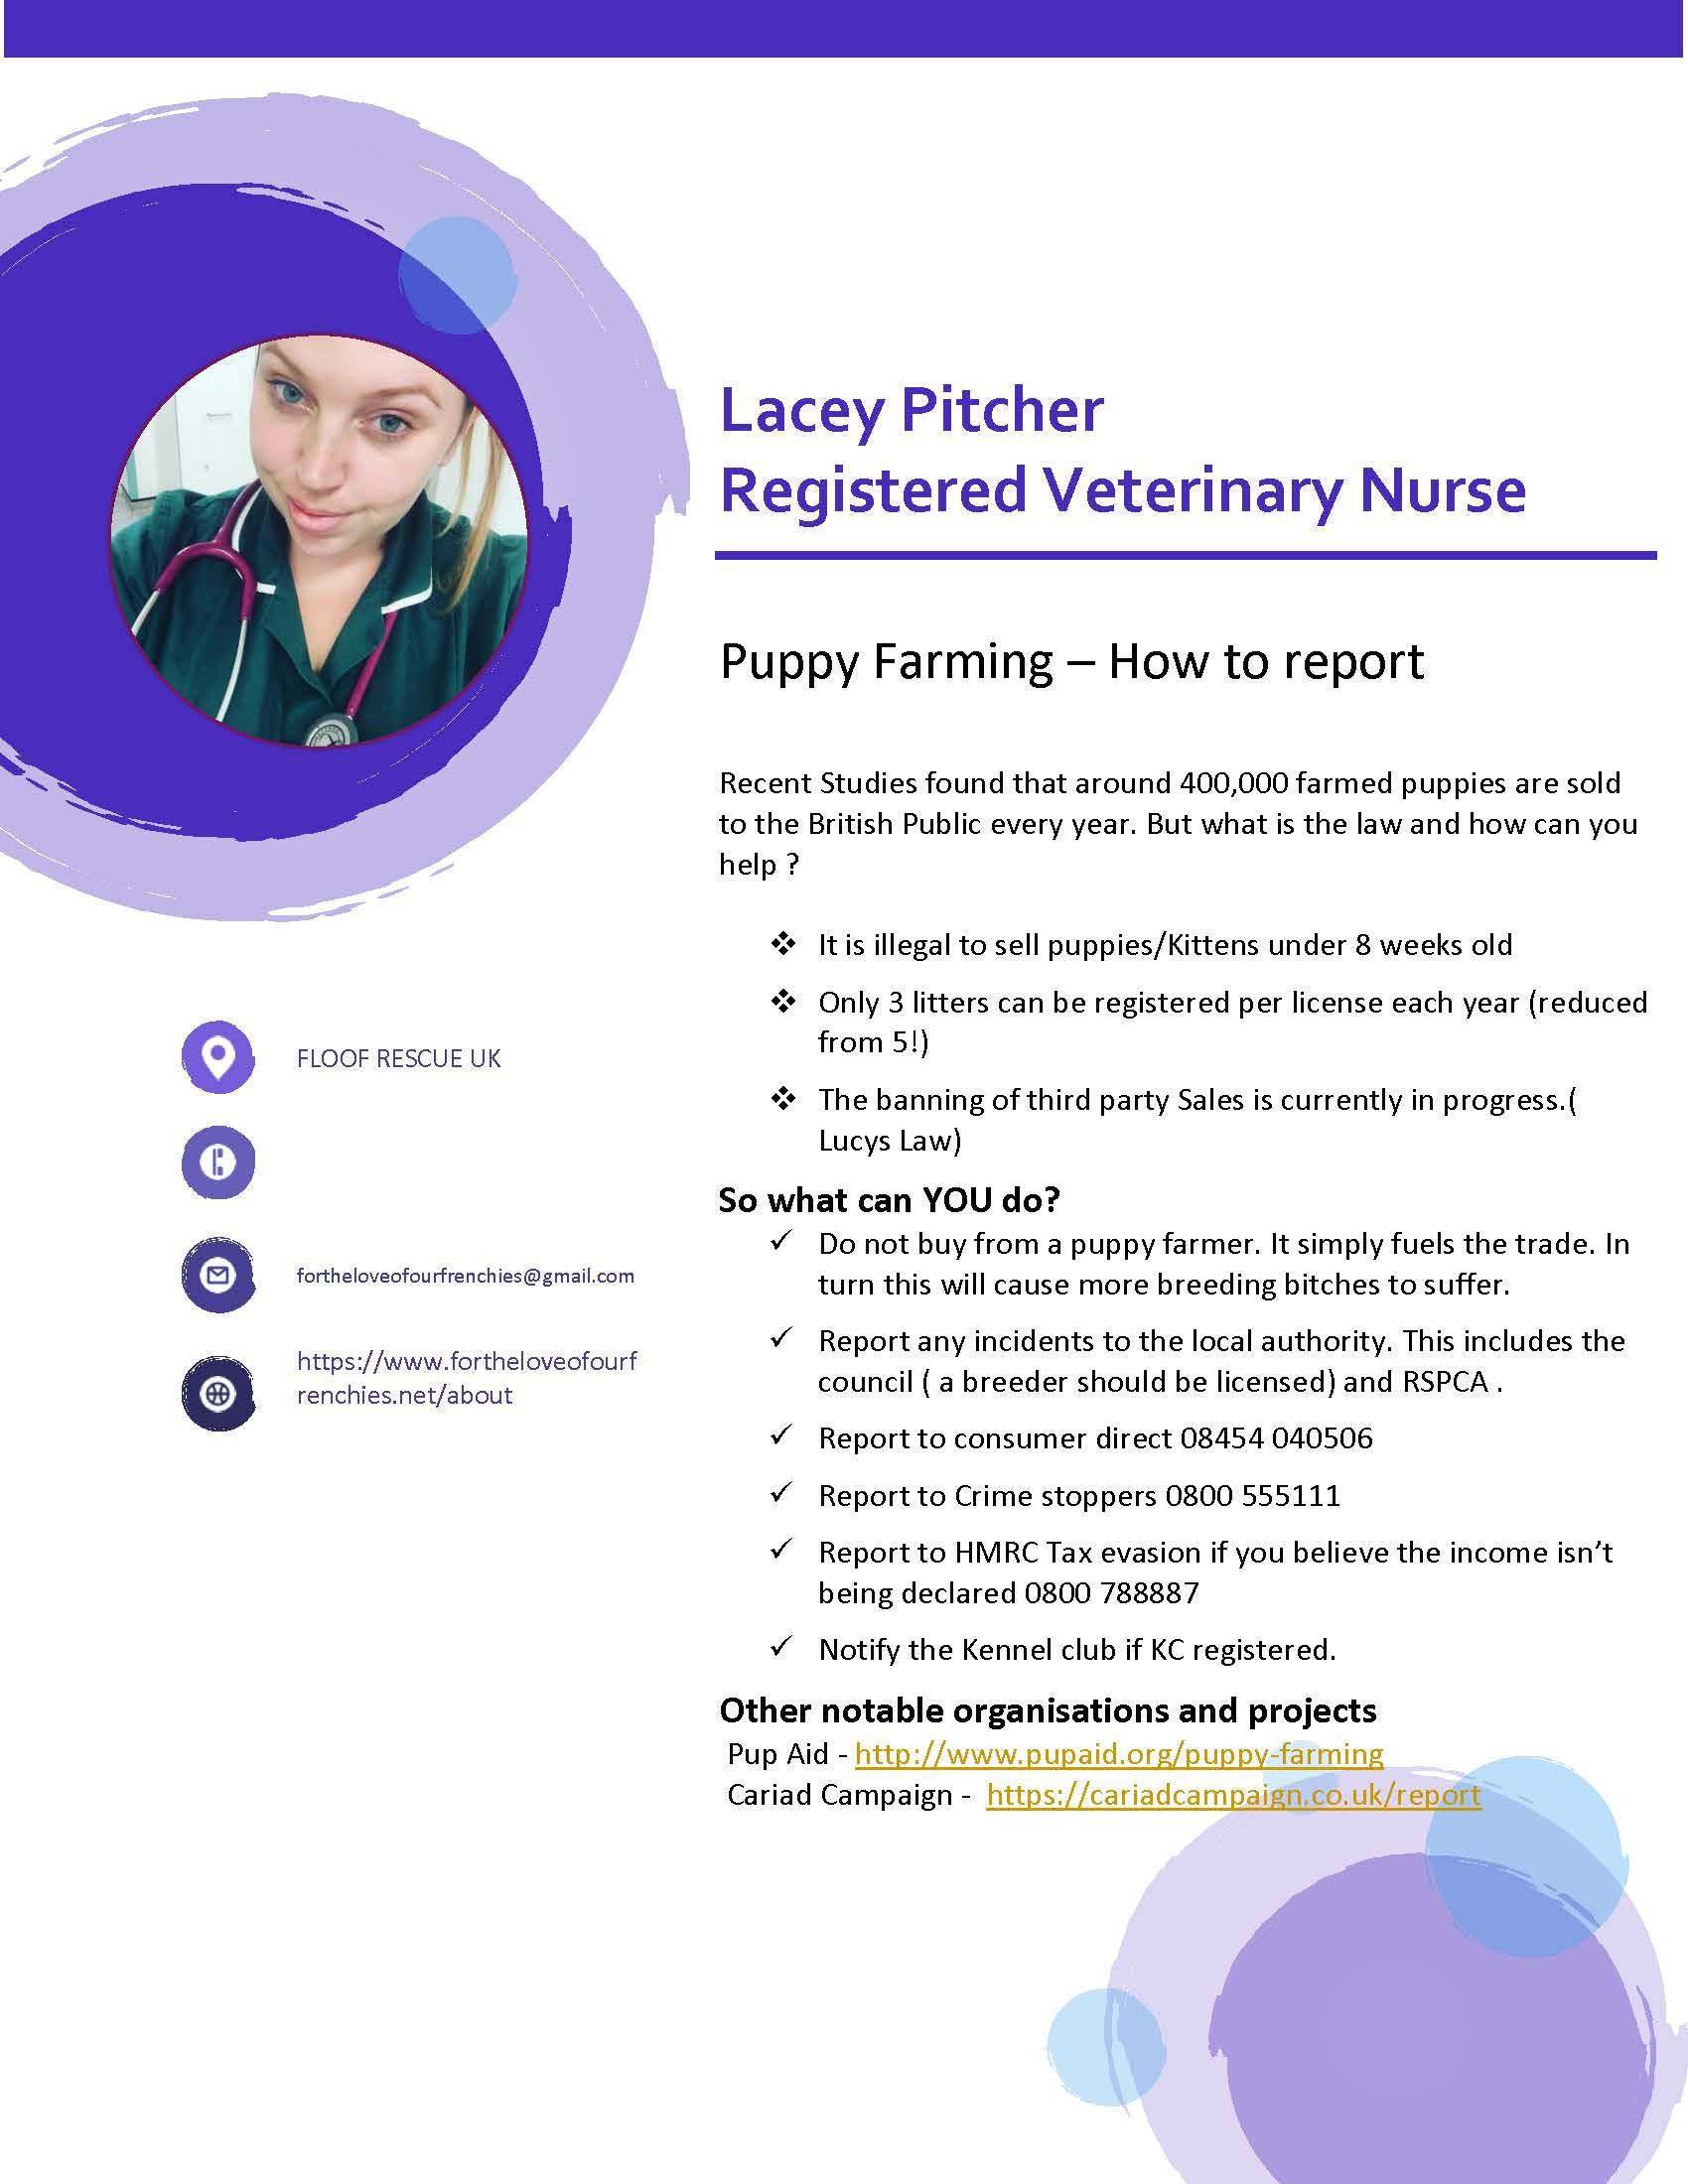 how to report puppy farming.jpg